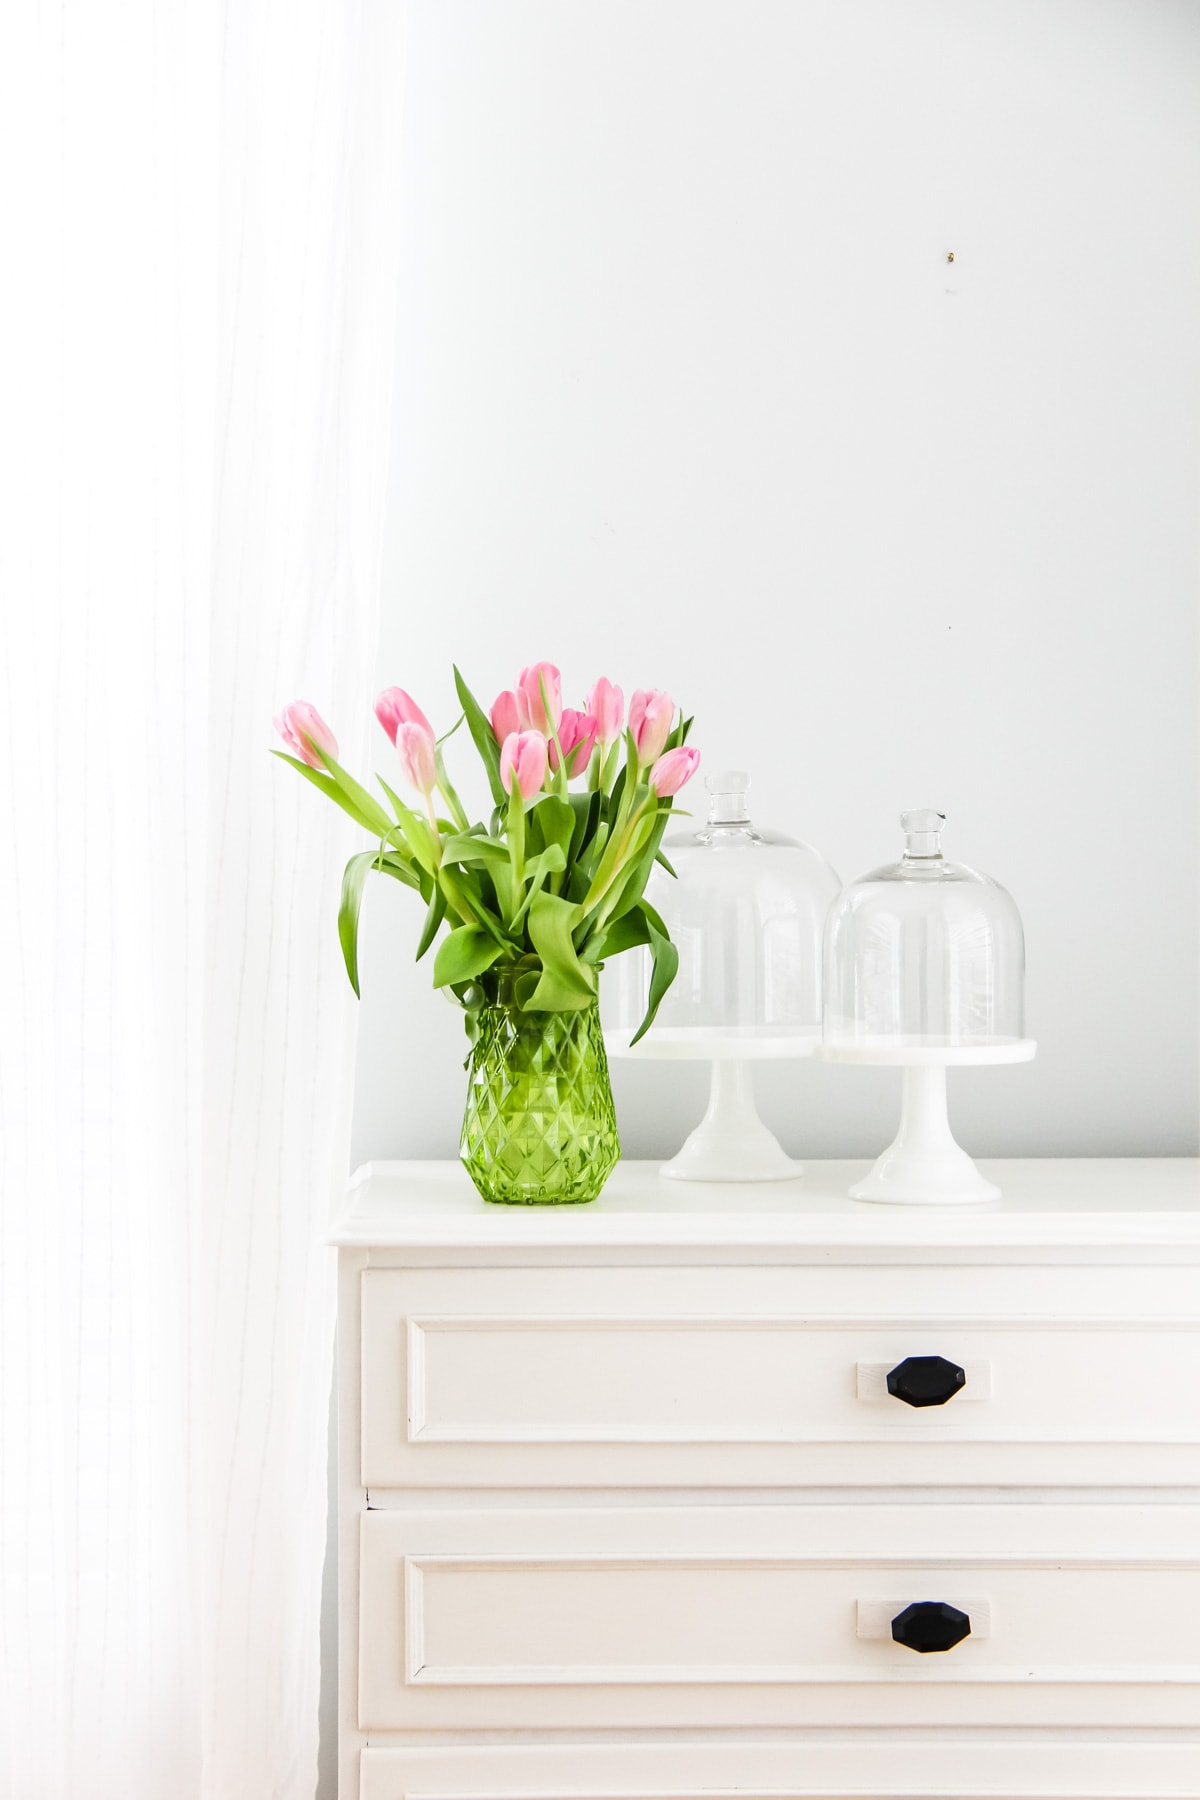 a bouquet of pink tulips in a green glass vase, sitting on a white chest of drawers